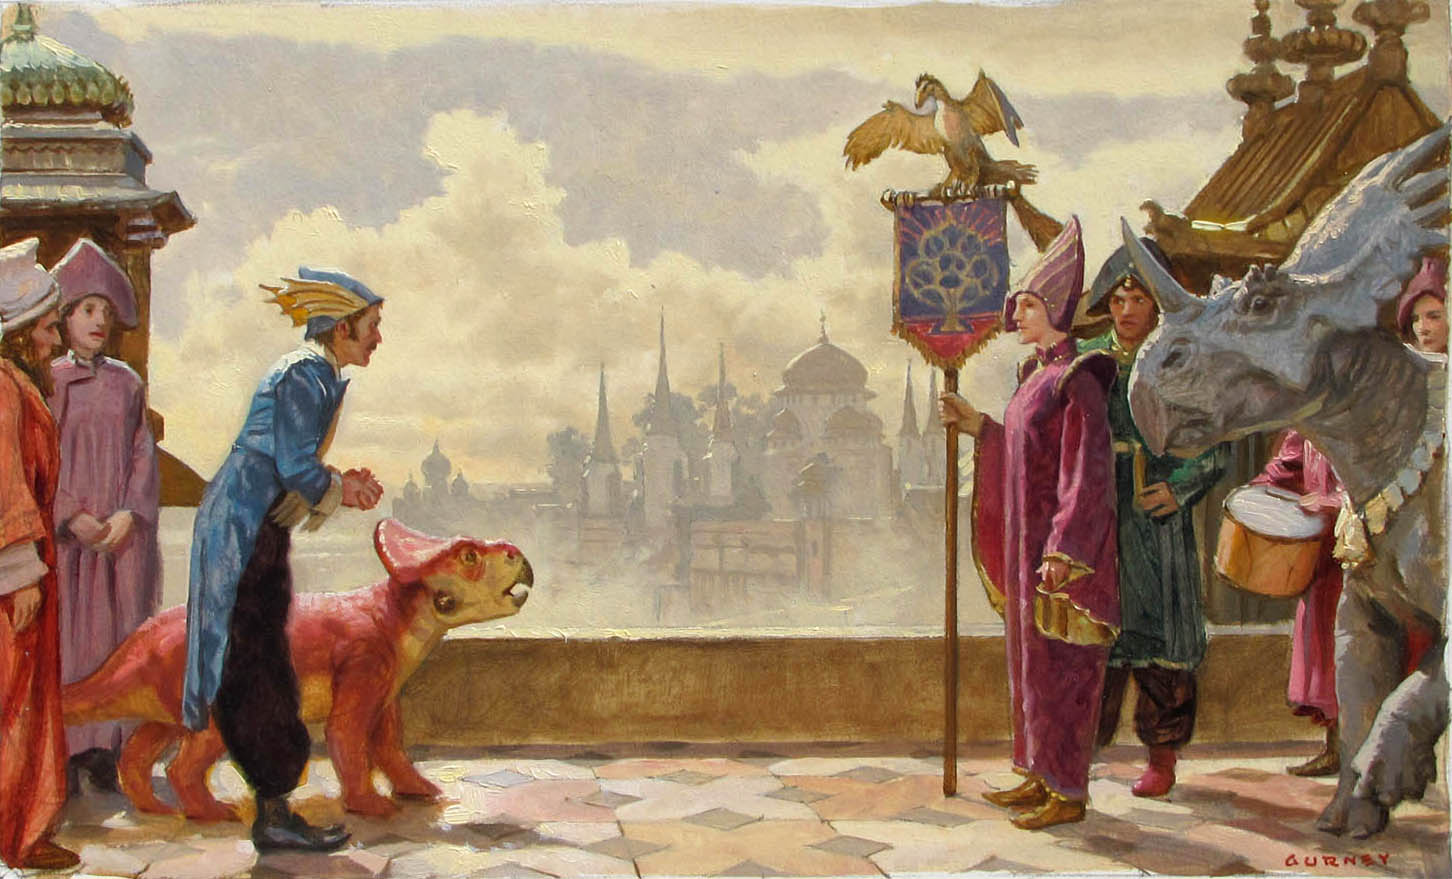 Gurney Journey Dinotopia Originals to be in Tajan Auction 1452x879